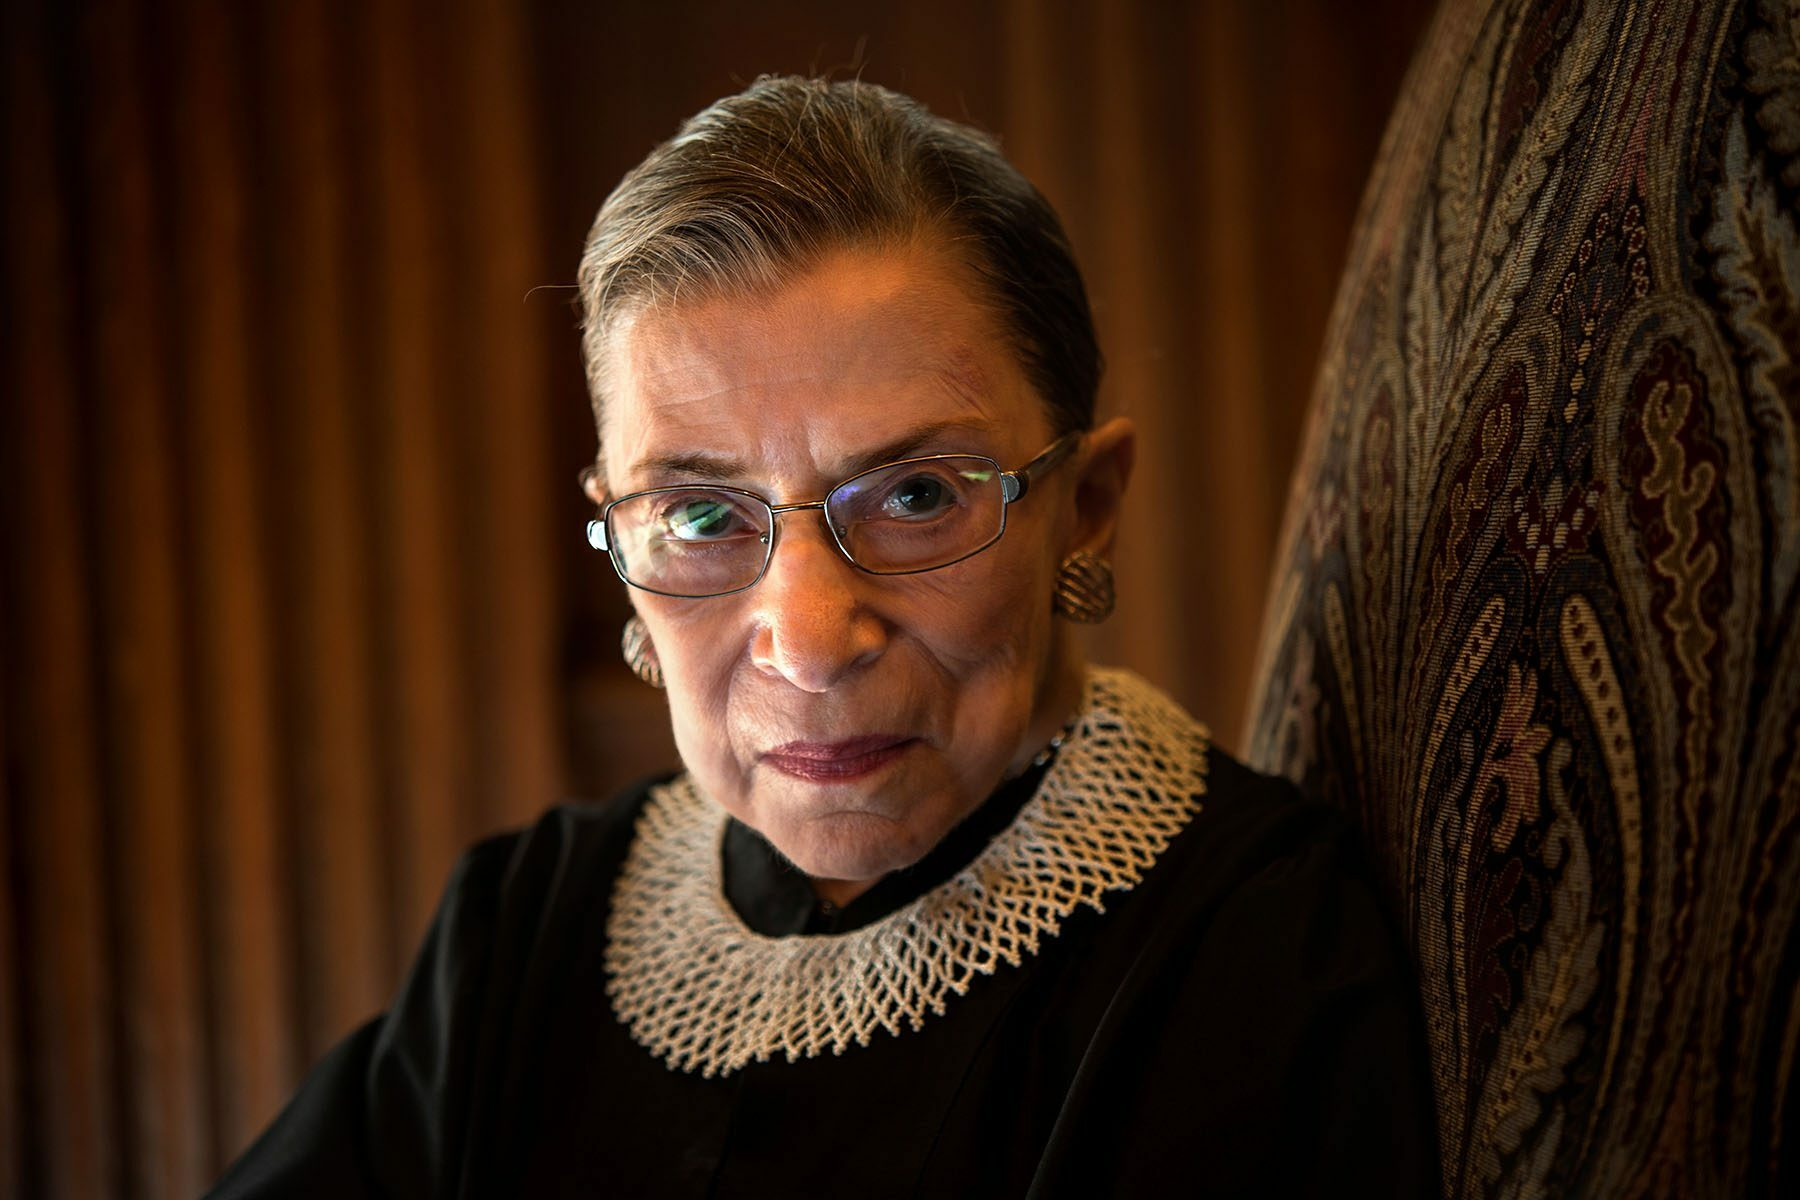 Ruth Bader Ginsburg sits in a chair and looks into the camera.